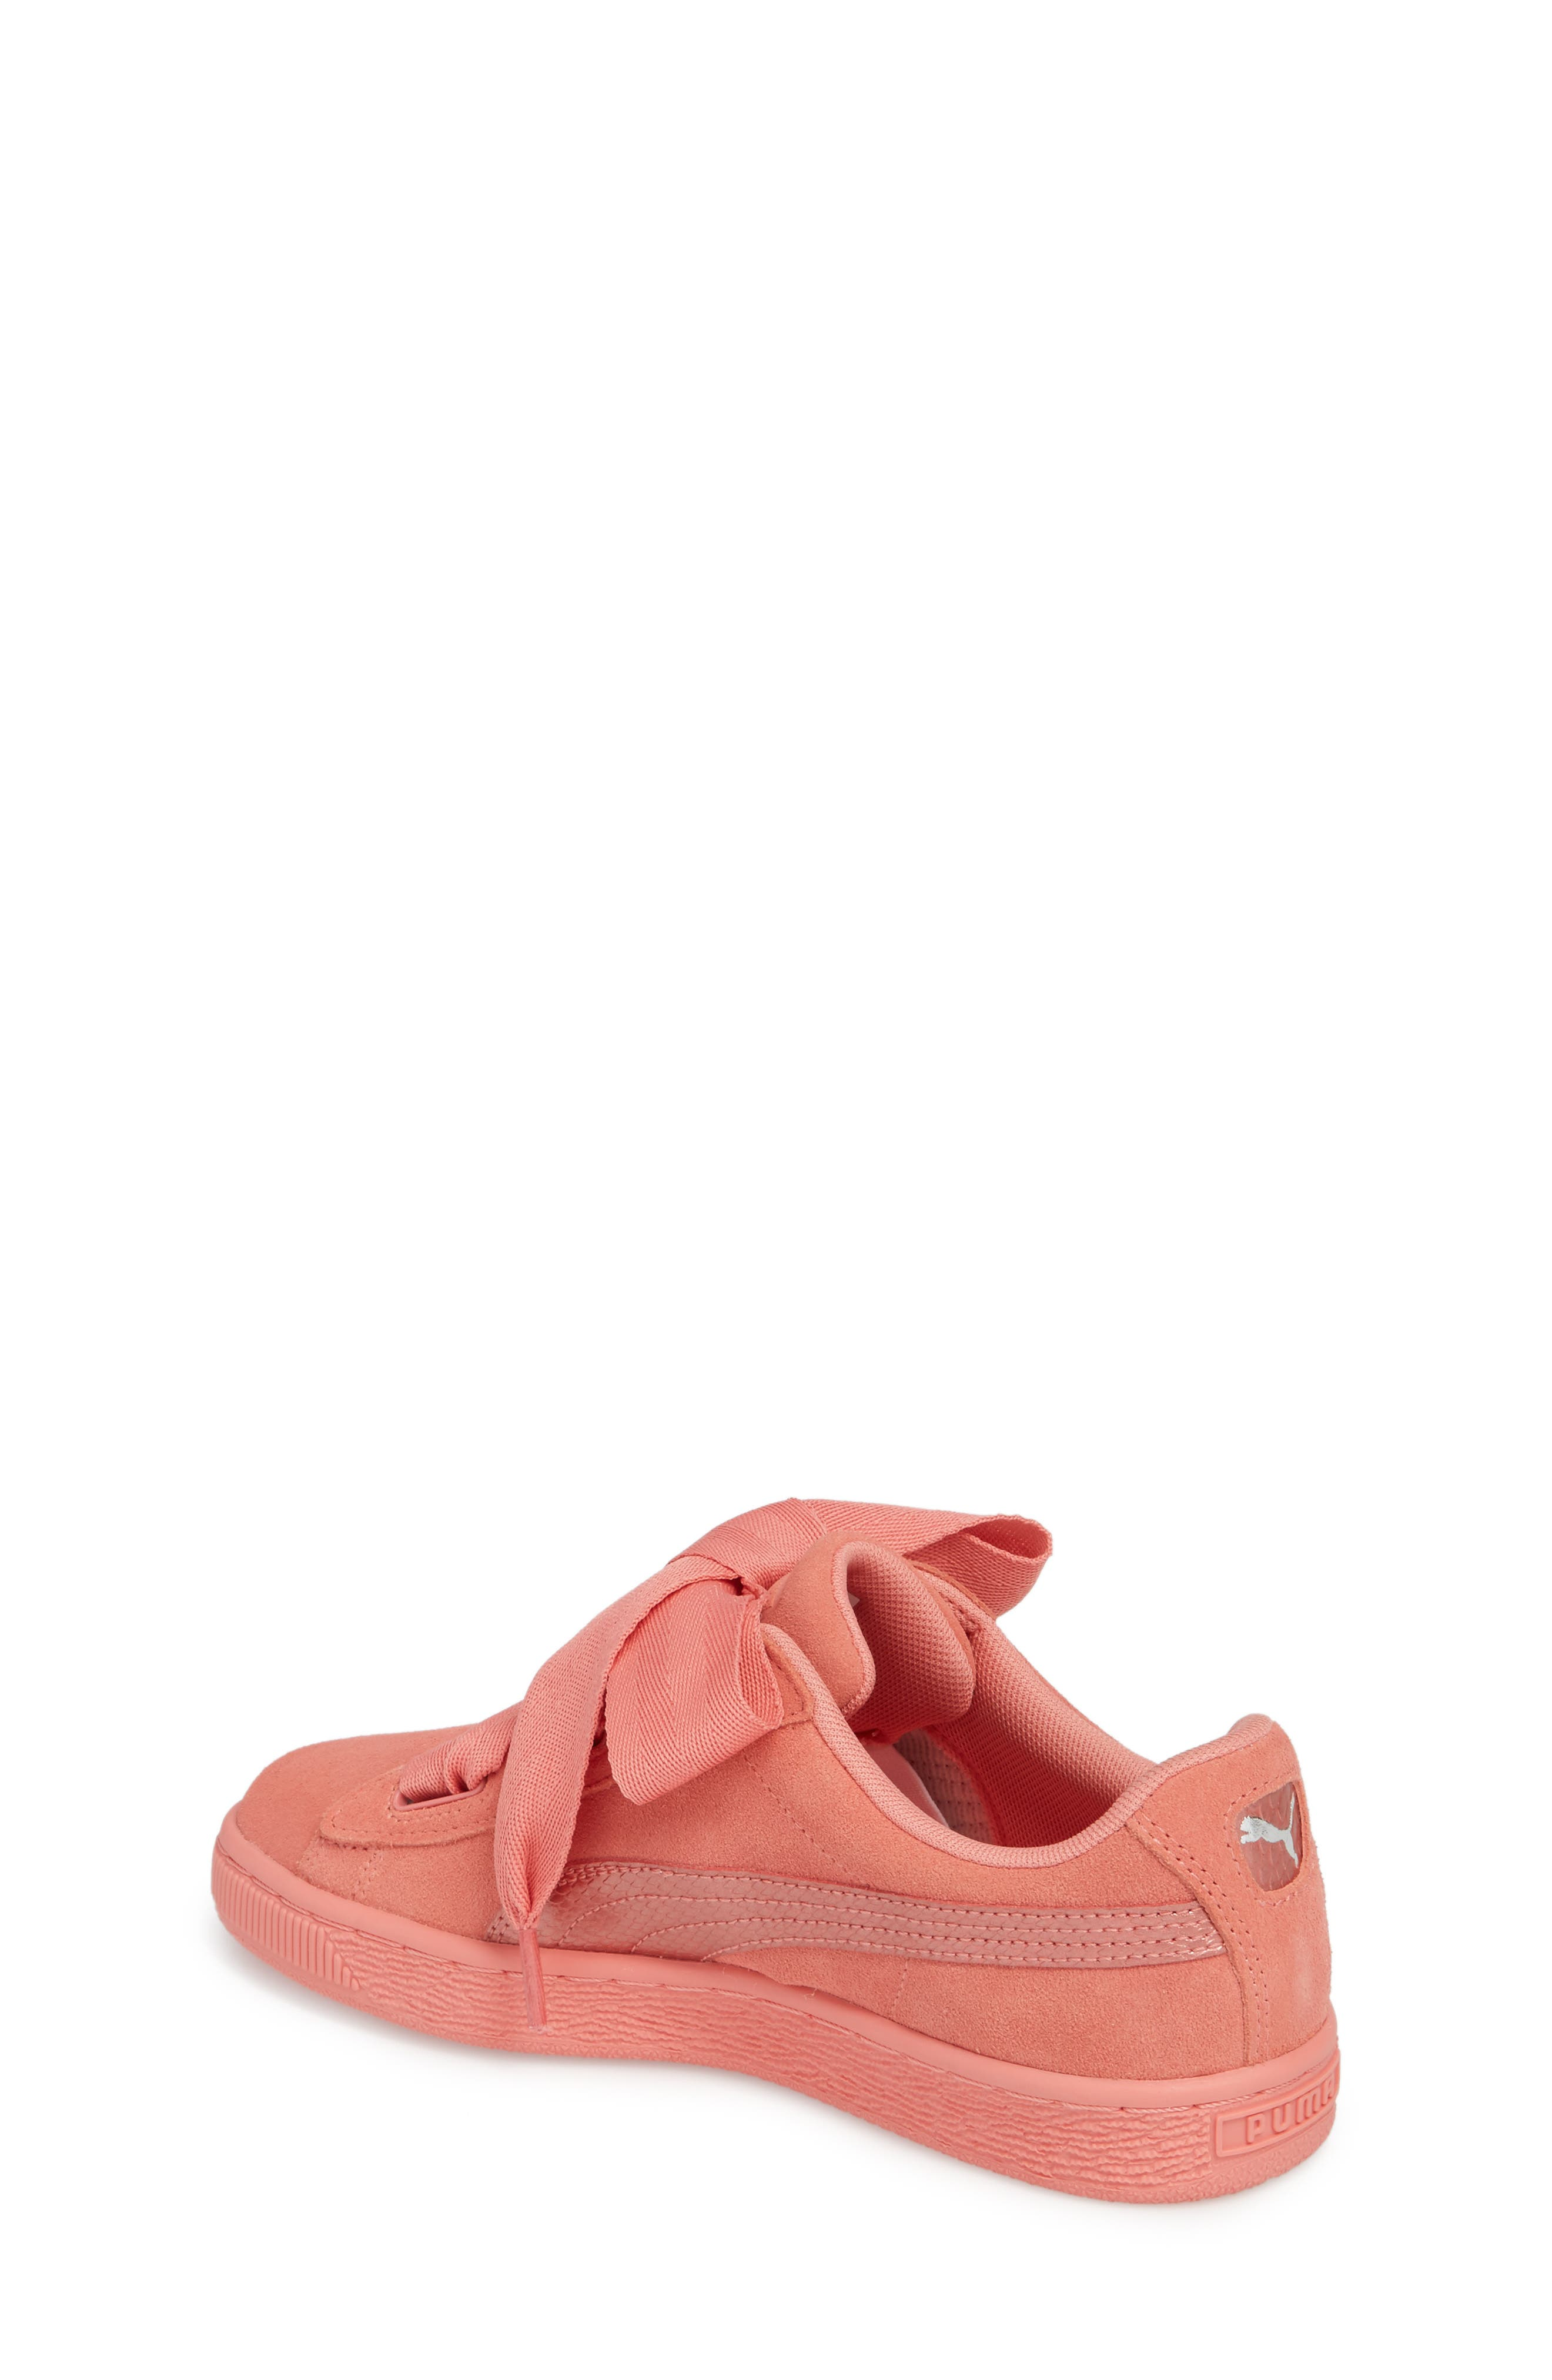 Suede Heart Sneaker,                             Alternate thumbnail 2, color,                             Shell Pink/ Shell Pink